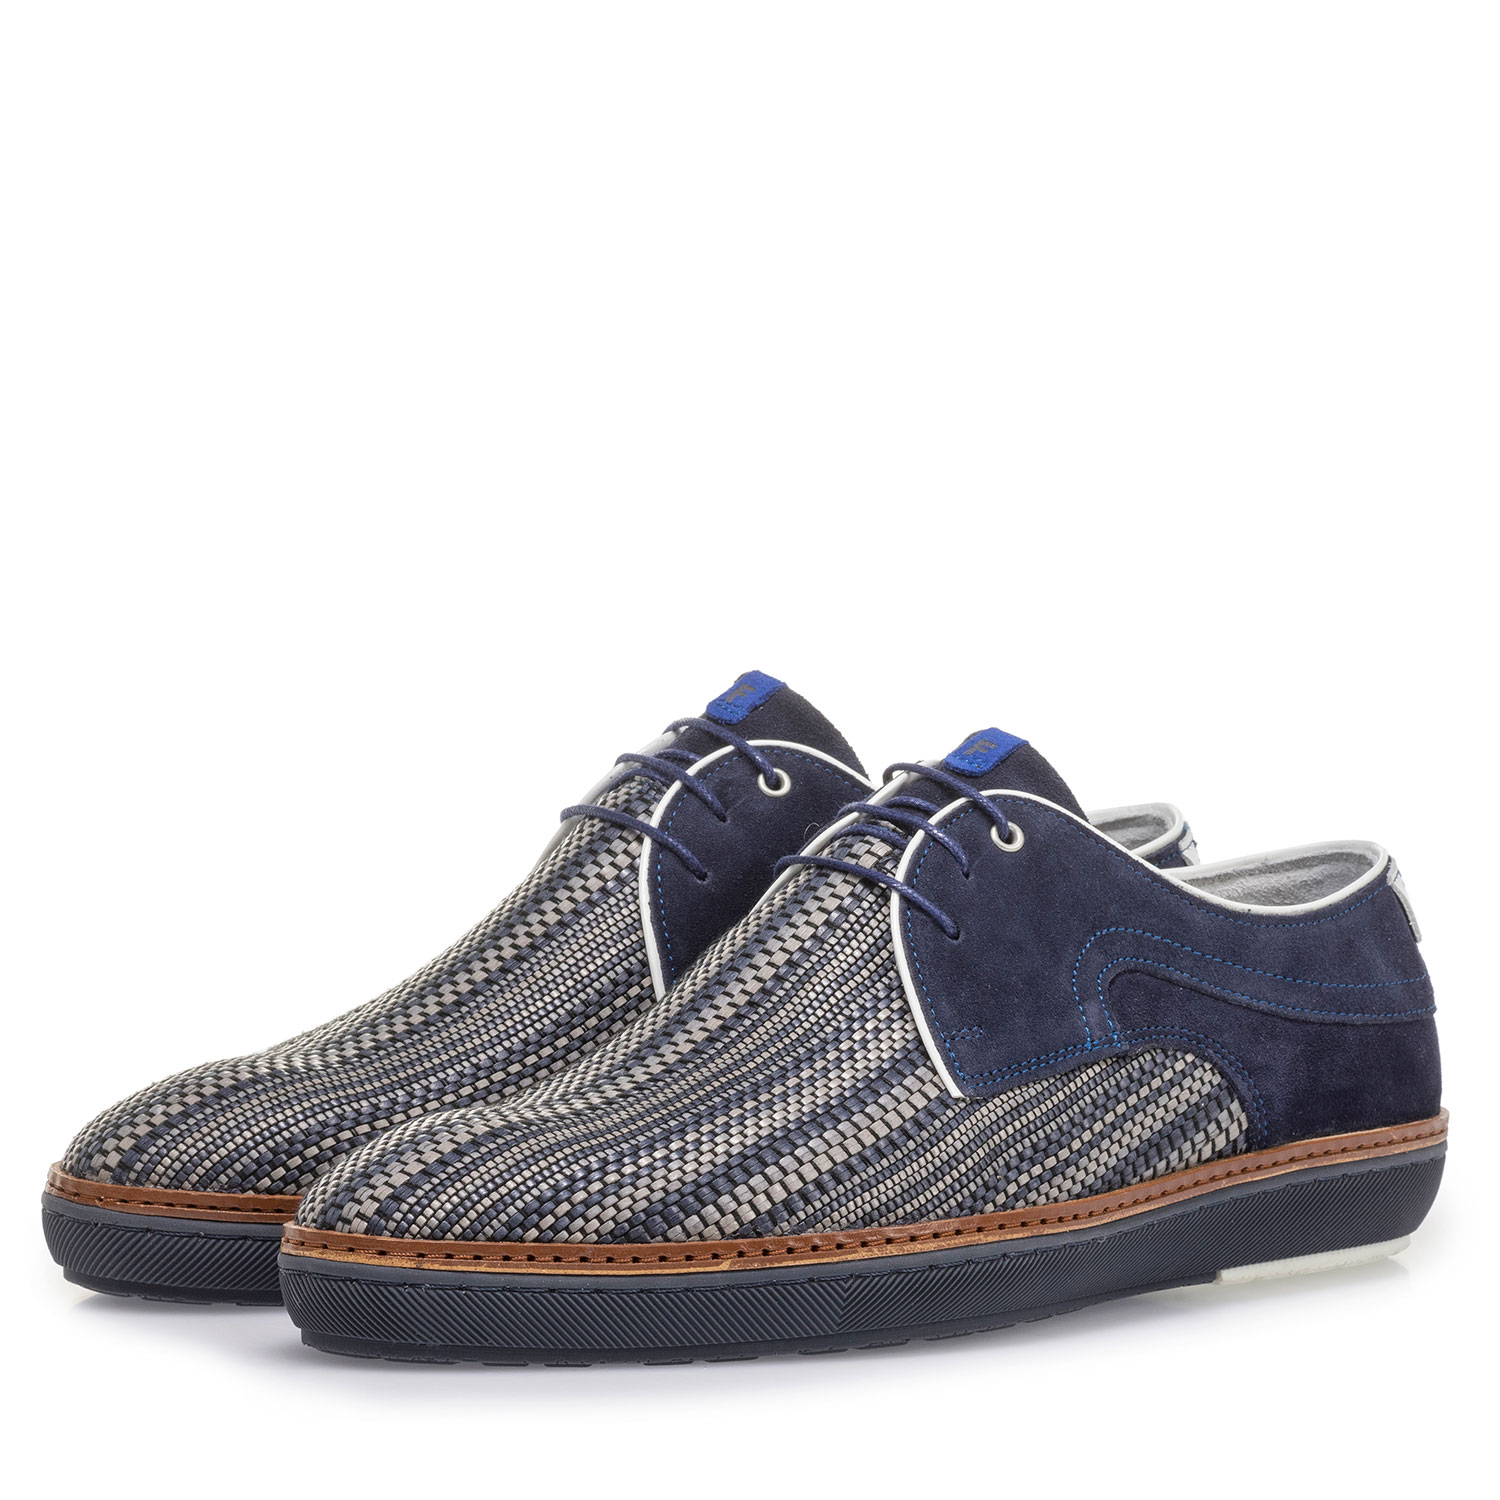 14020/34 - Dark blue lace shoe with grey print